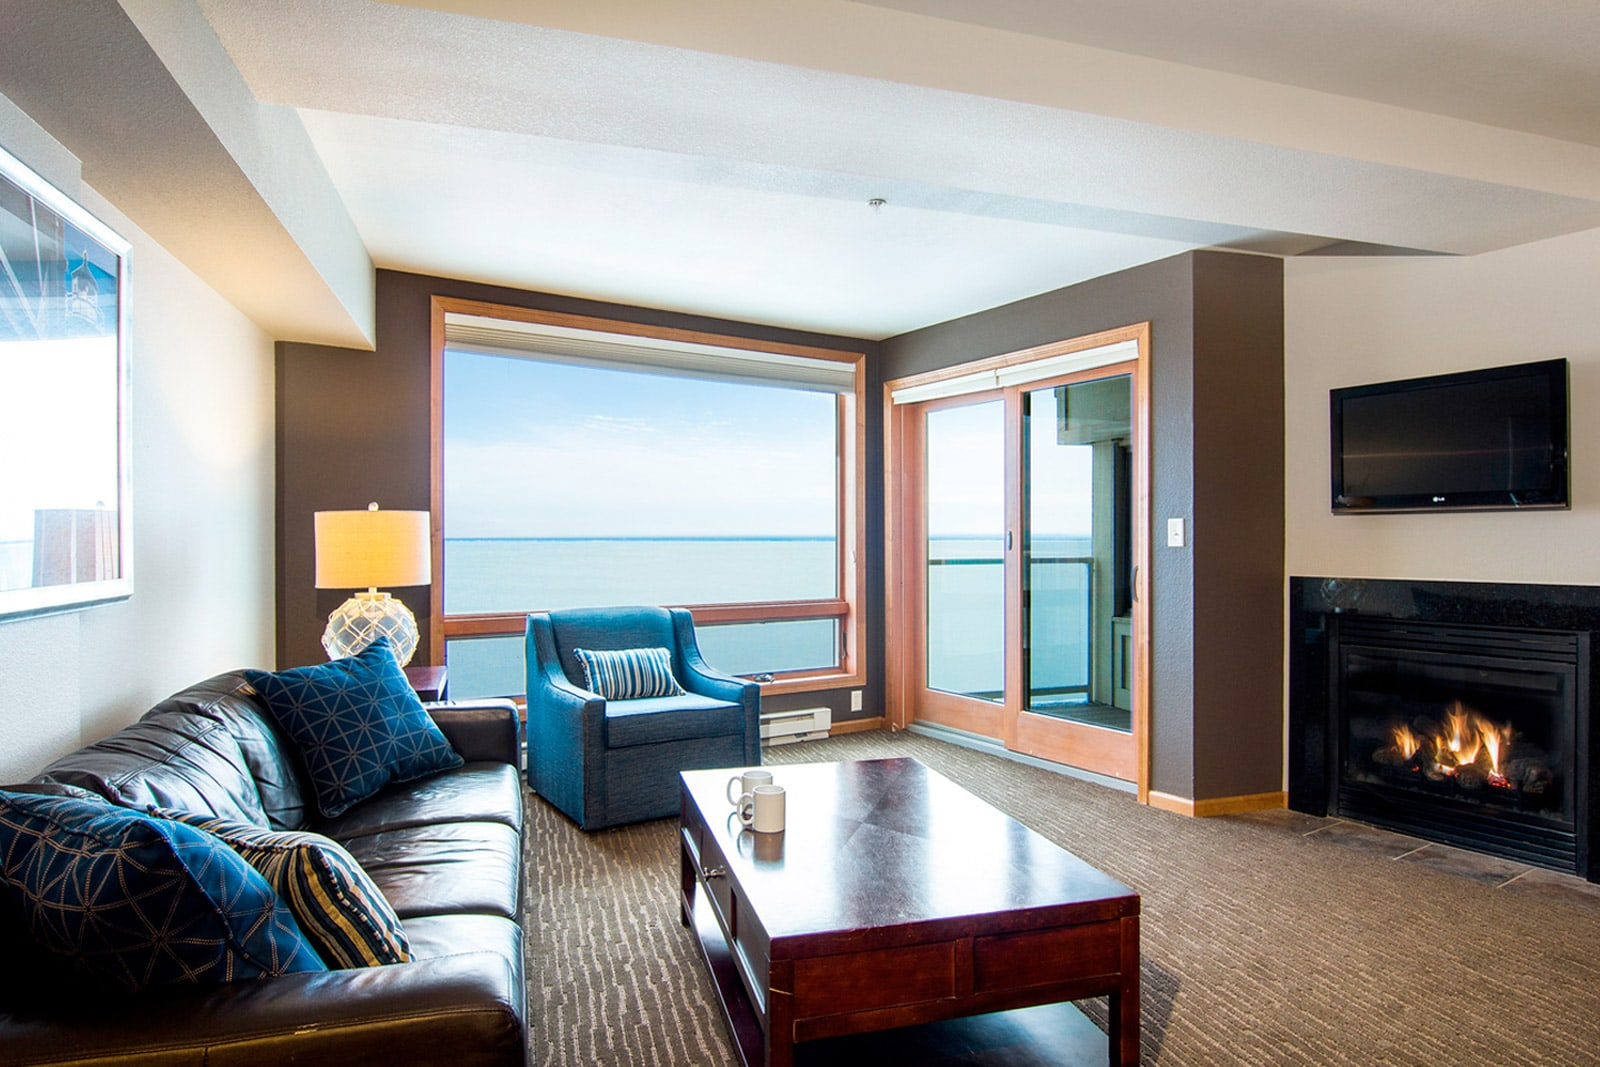 Duluth Mn Suites Duluth's Best Lodging – We've Got The Room You're Looking For.